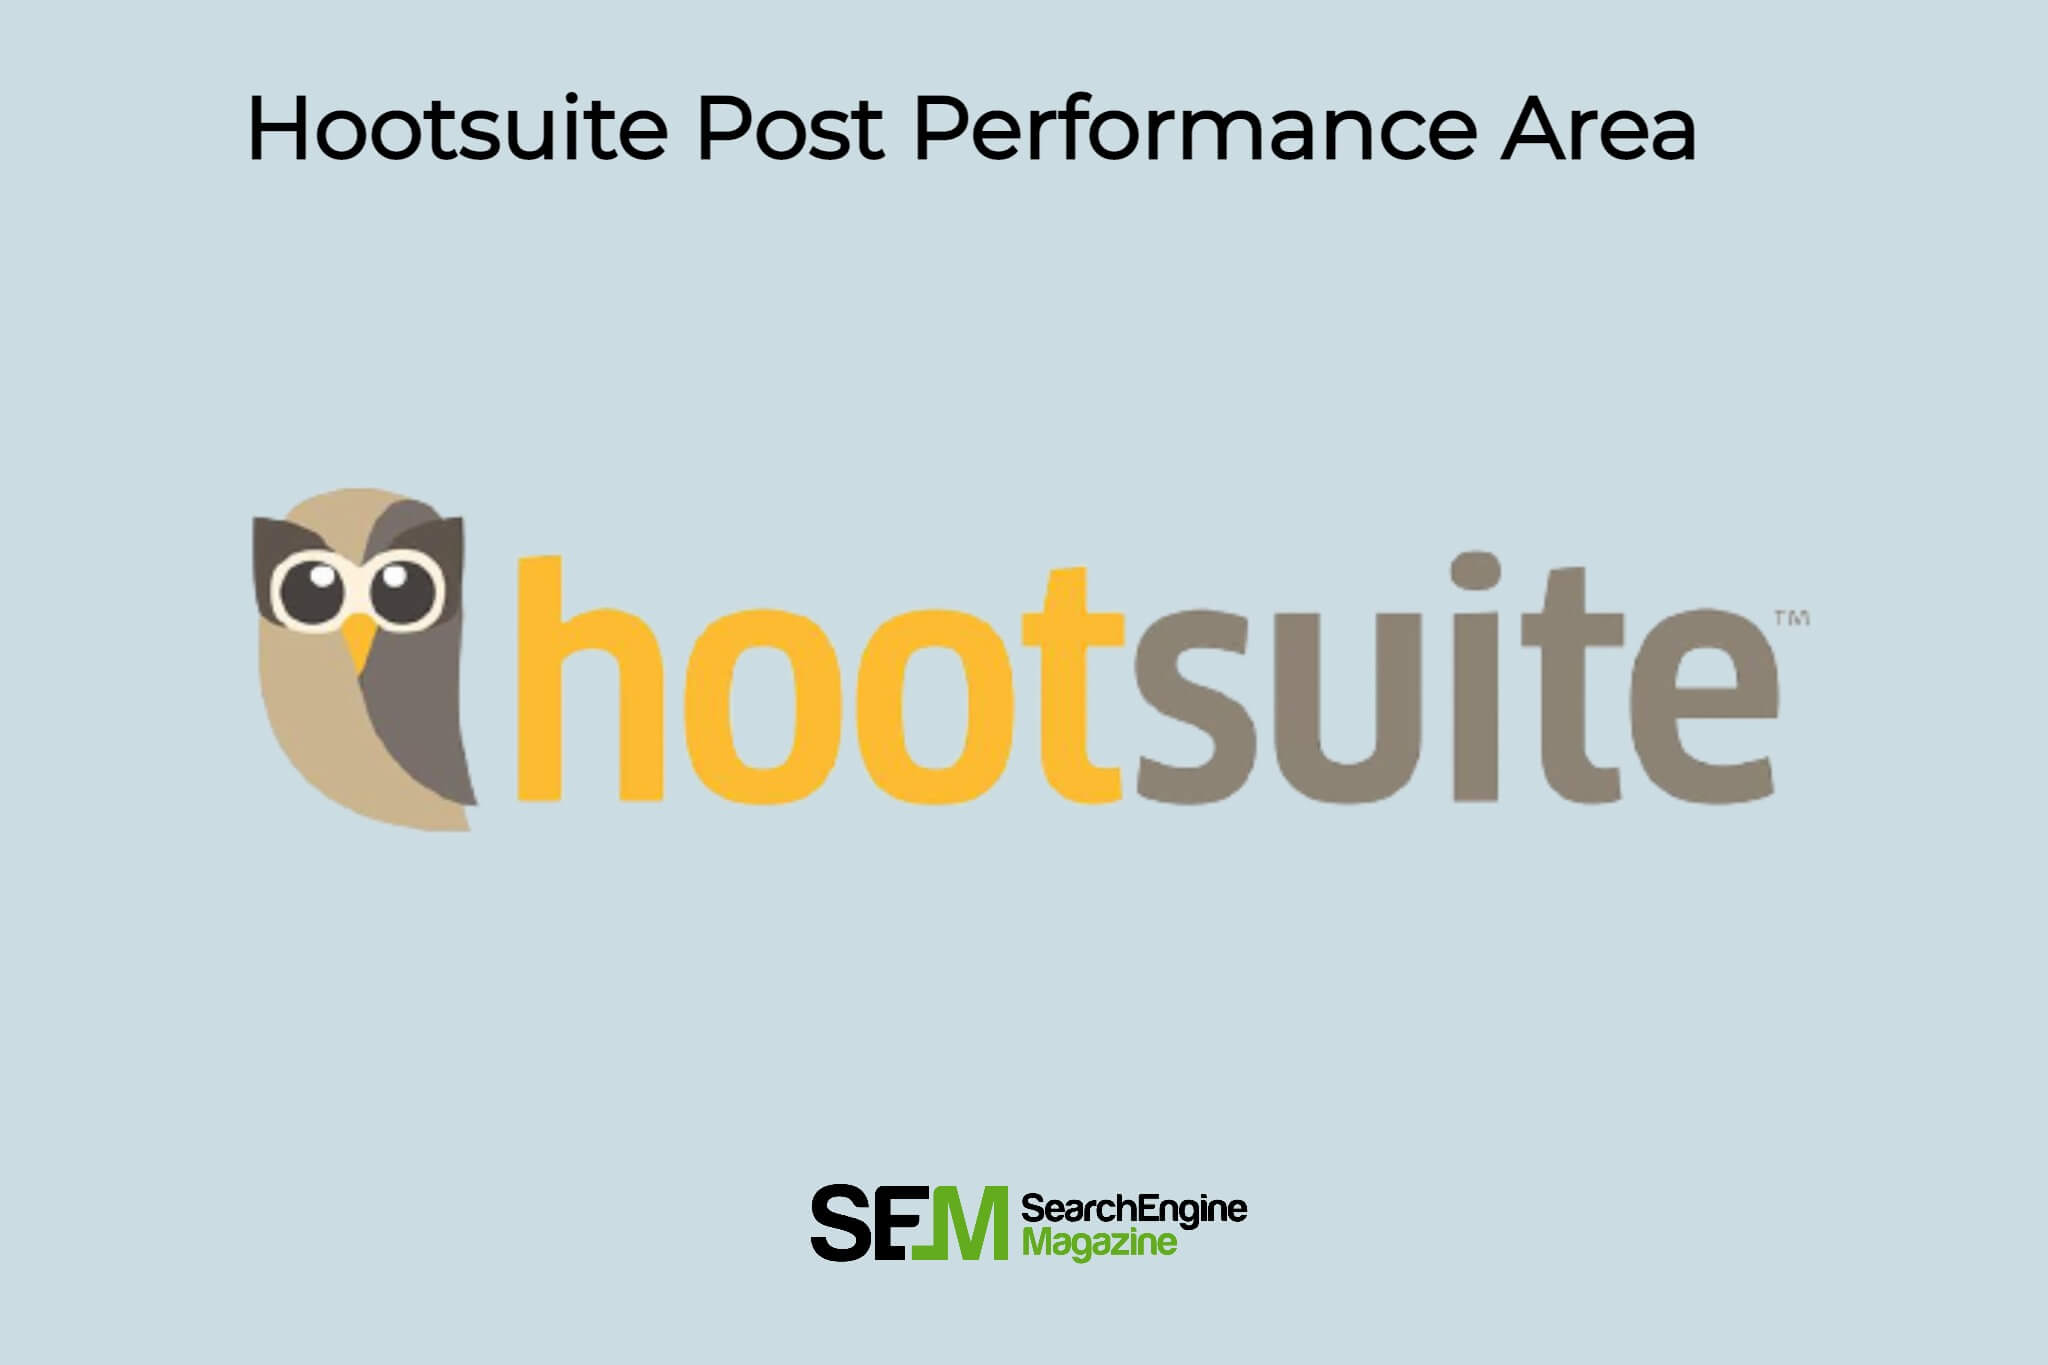 A benefit of using the post performance area within hootsuite analytics is that it shows